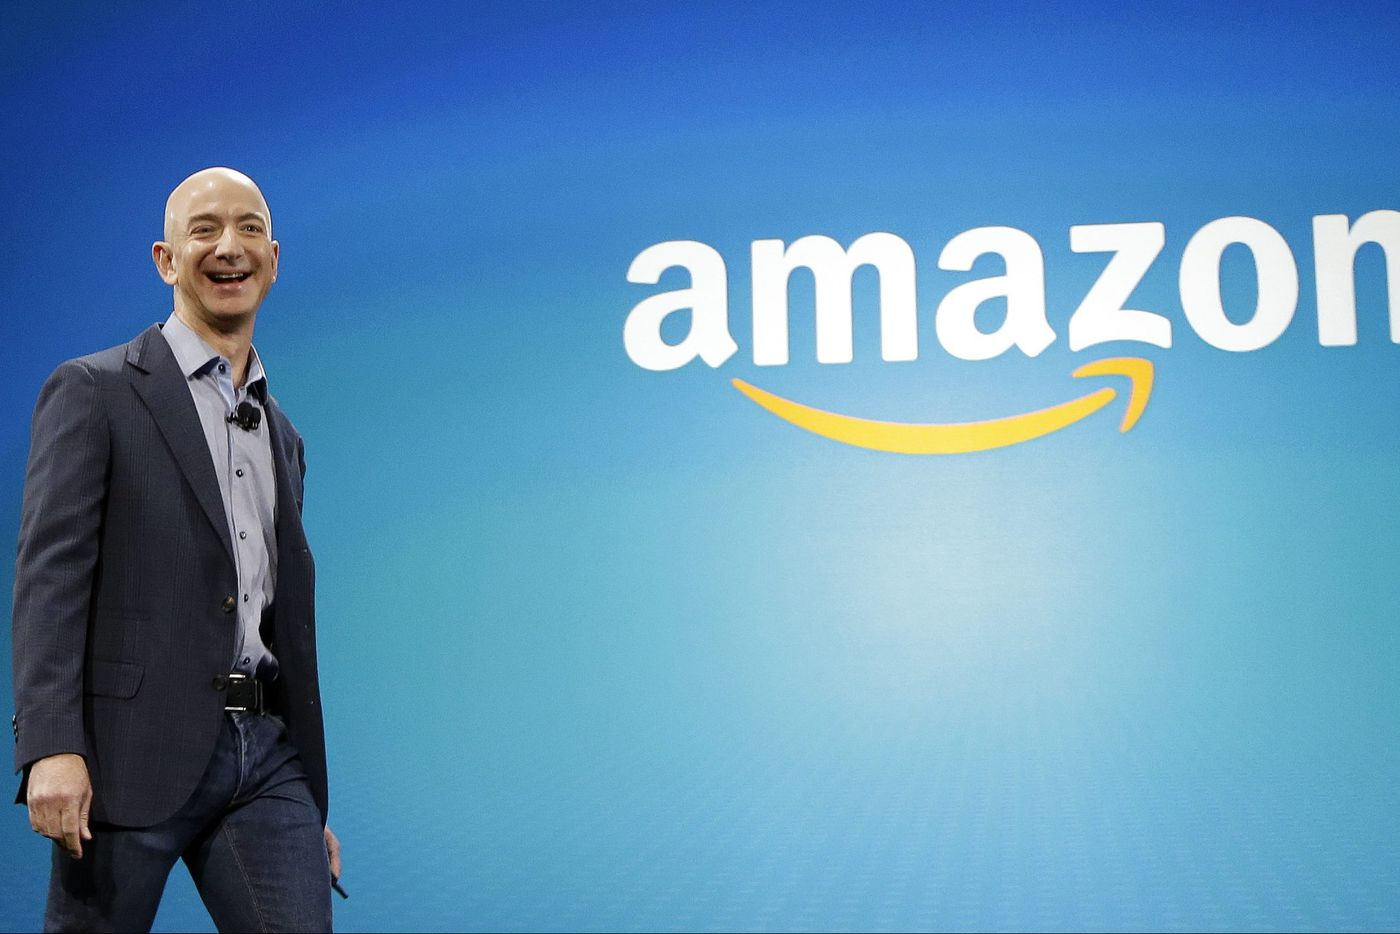 Read Jeff Bezos' full statement about his $2 billion Day One fund